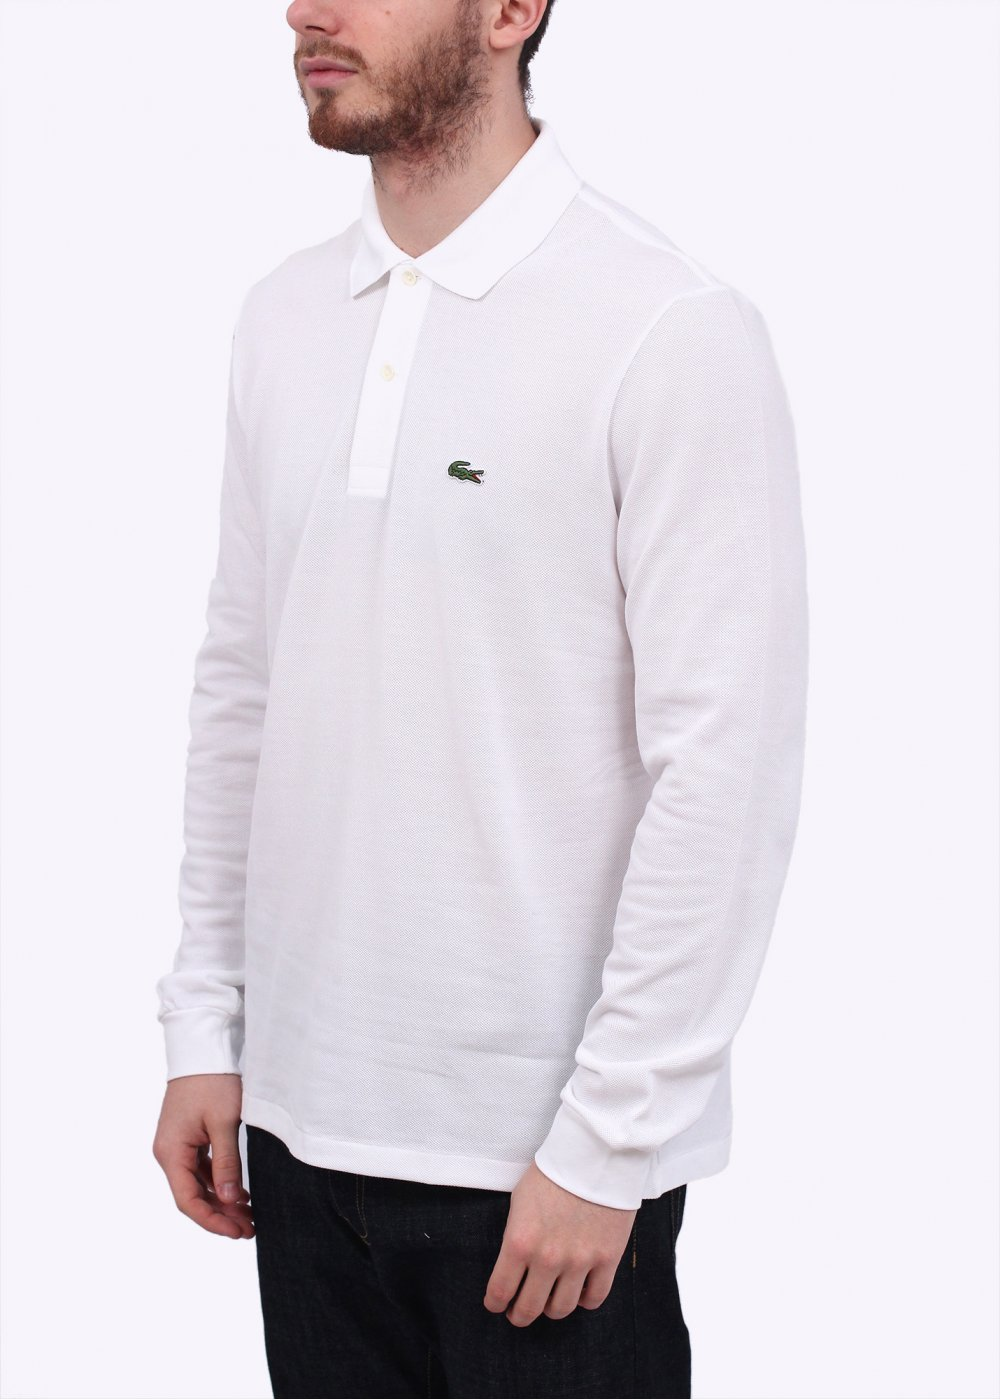 504350c9 Lacoste Long Sleeve Polo Shirt - White